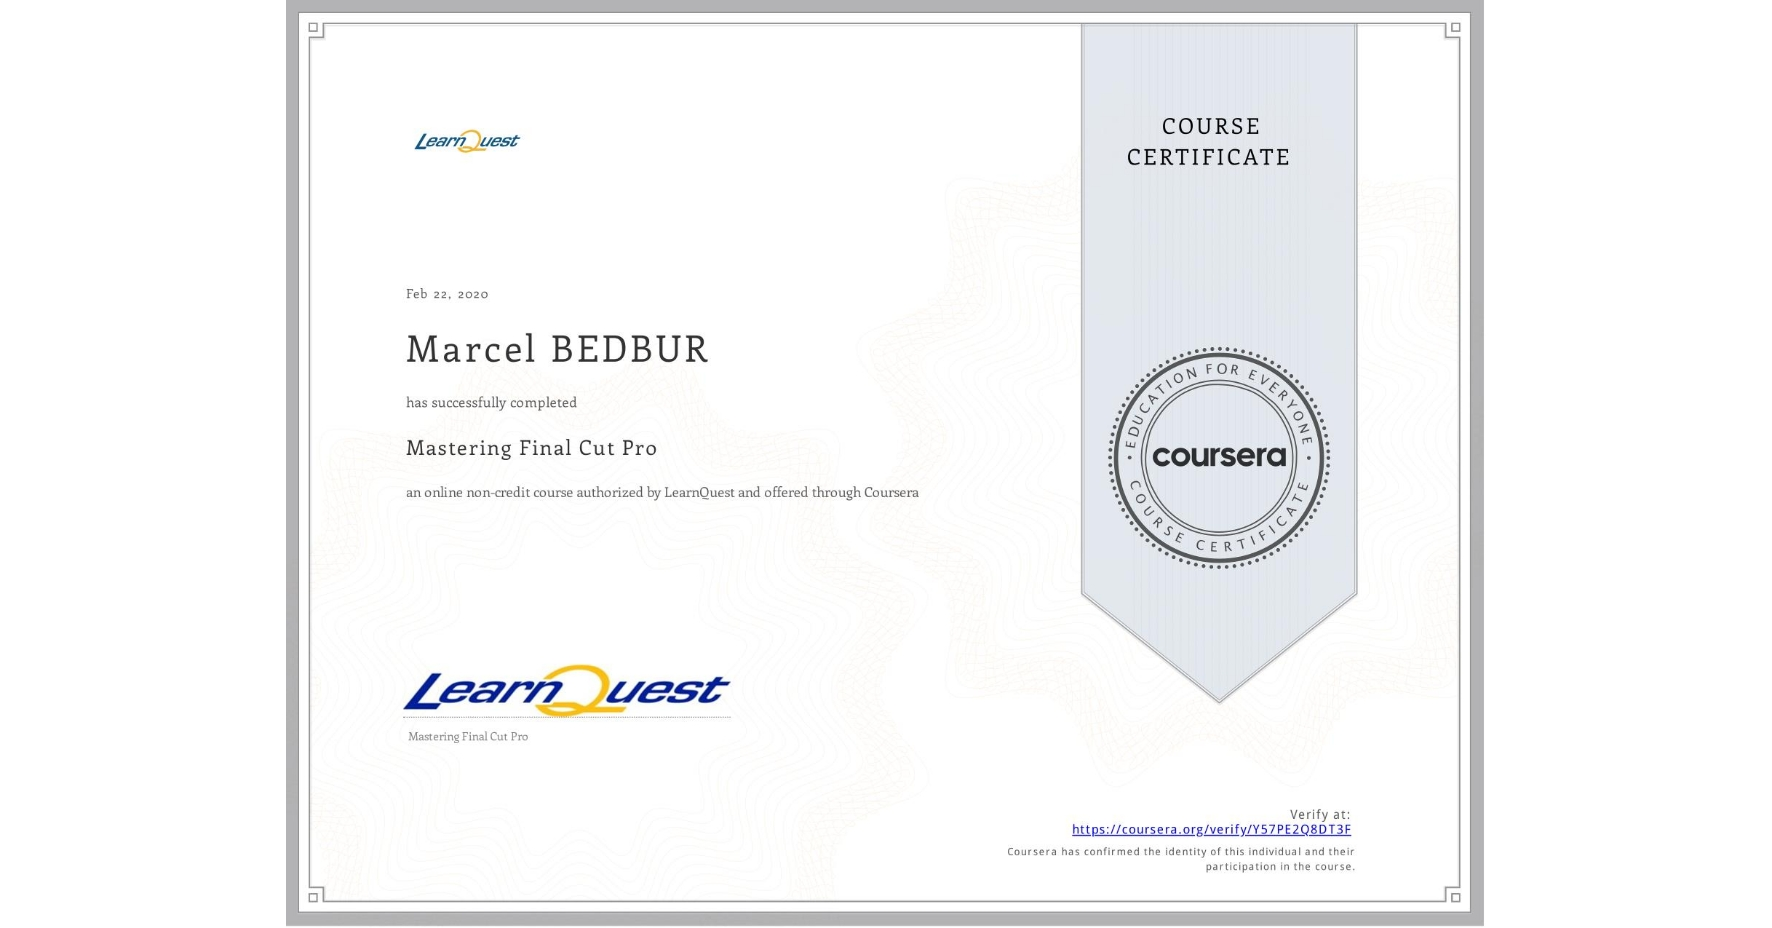 View certificate for Marcel BEDBUR, Mastering Final Cut Pro, an online non-credit course authorized by LearnQuest and offered through Coursera